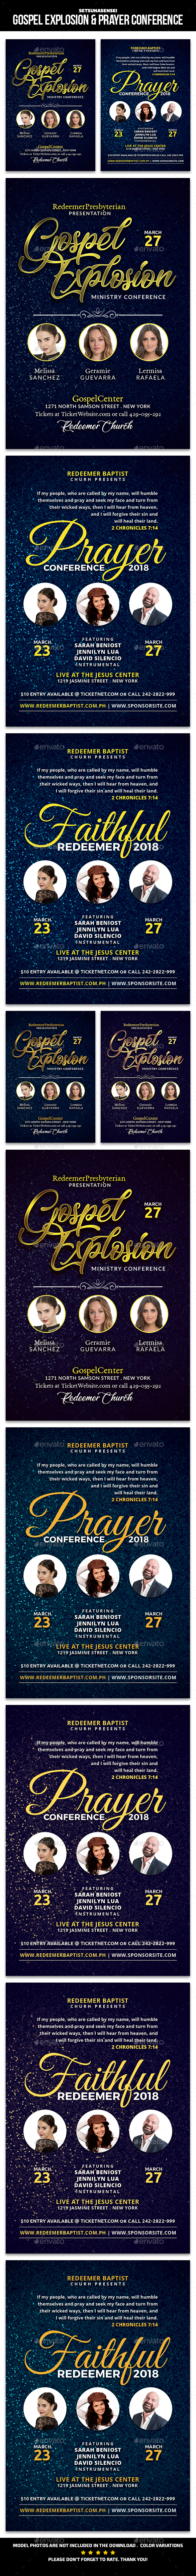 Gospel Explosion and Prayer Conference Church Flyer - Church Flyers